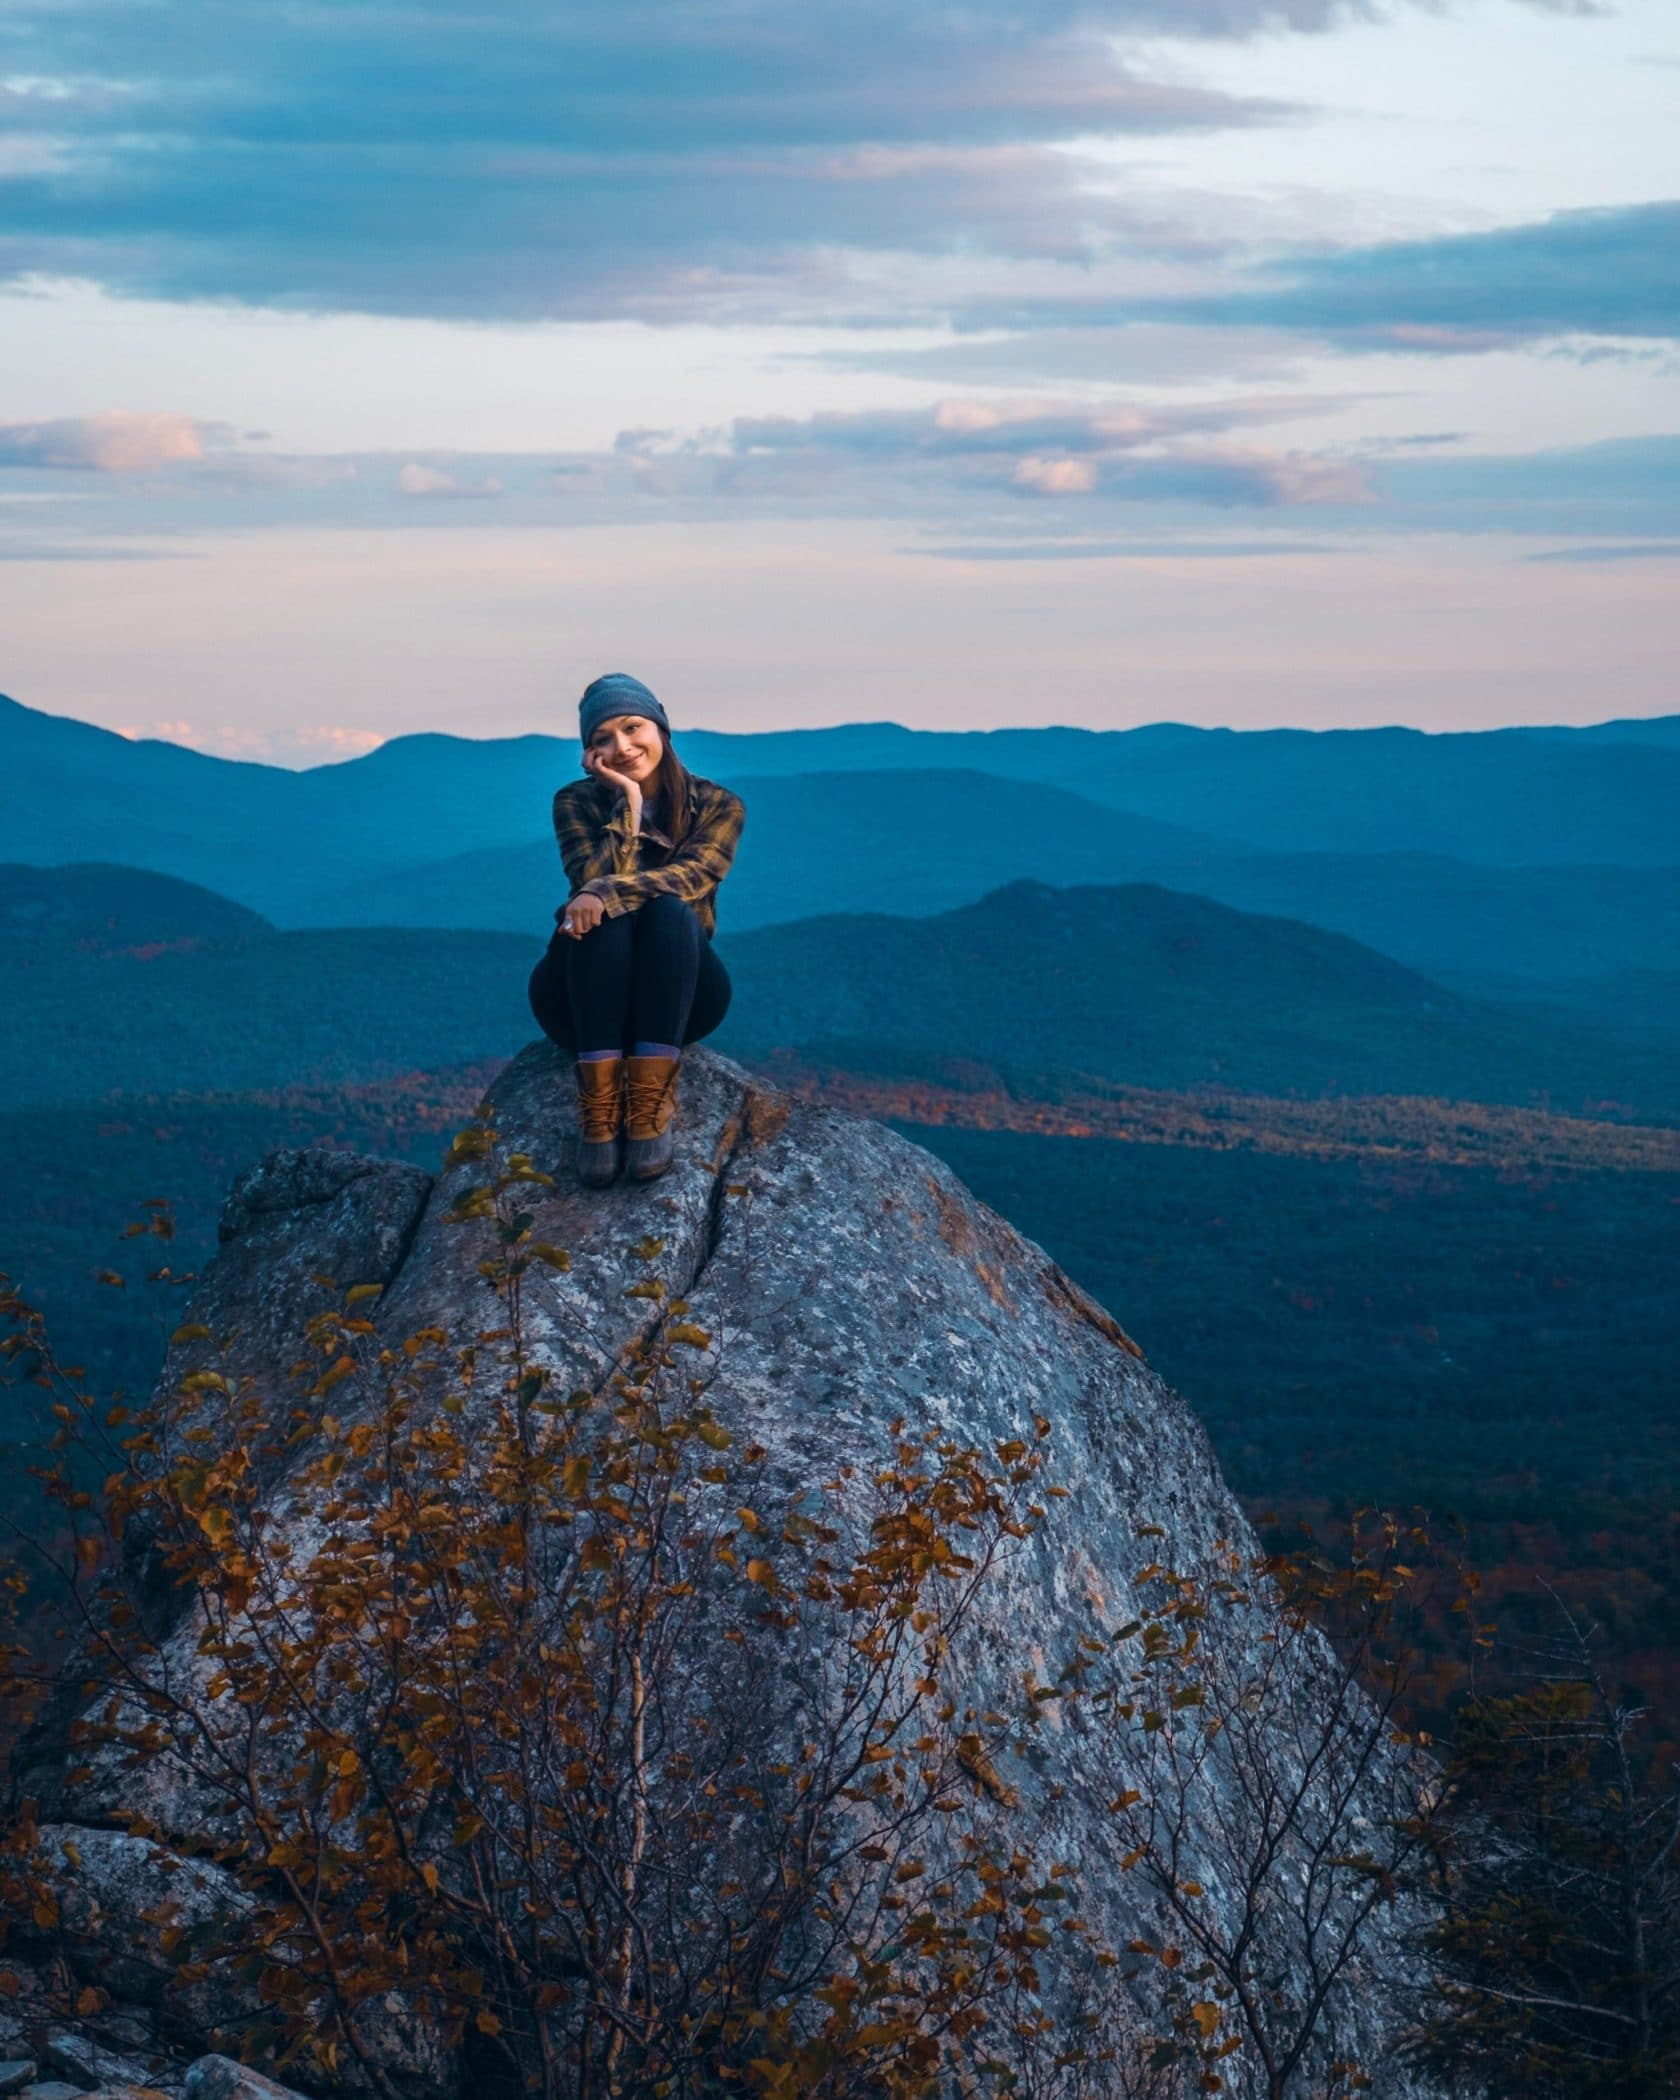 Easy hike to Cobble Lookout near Lake Placid